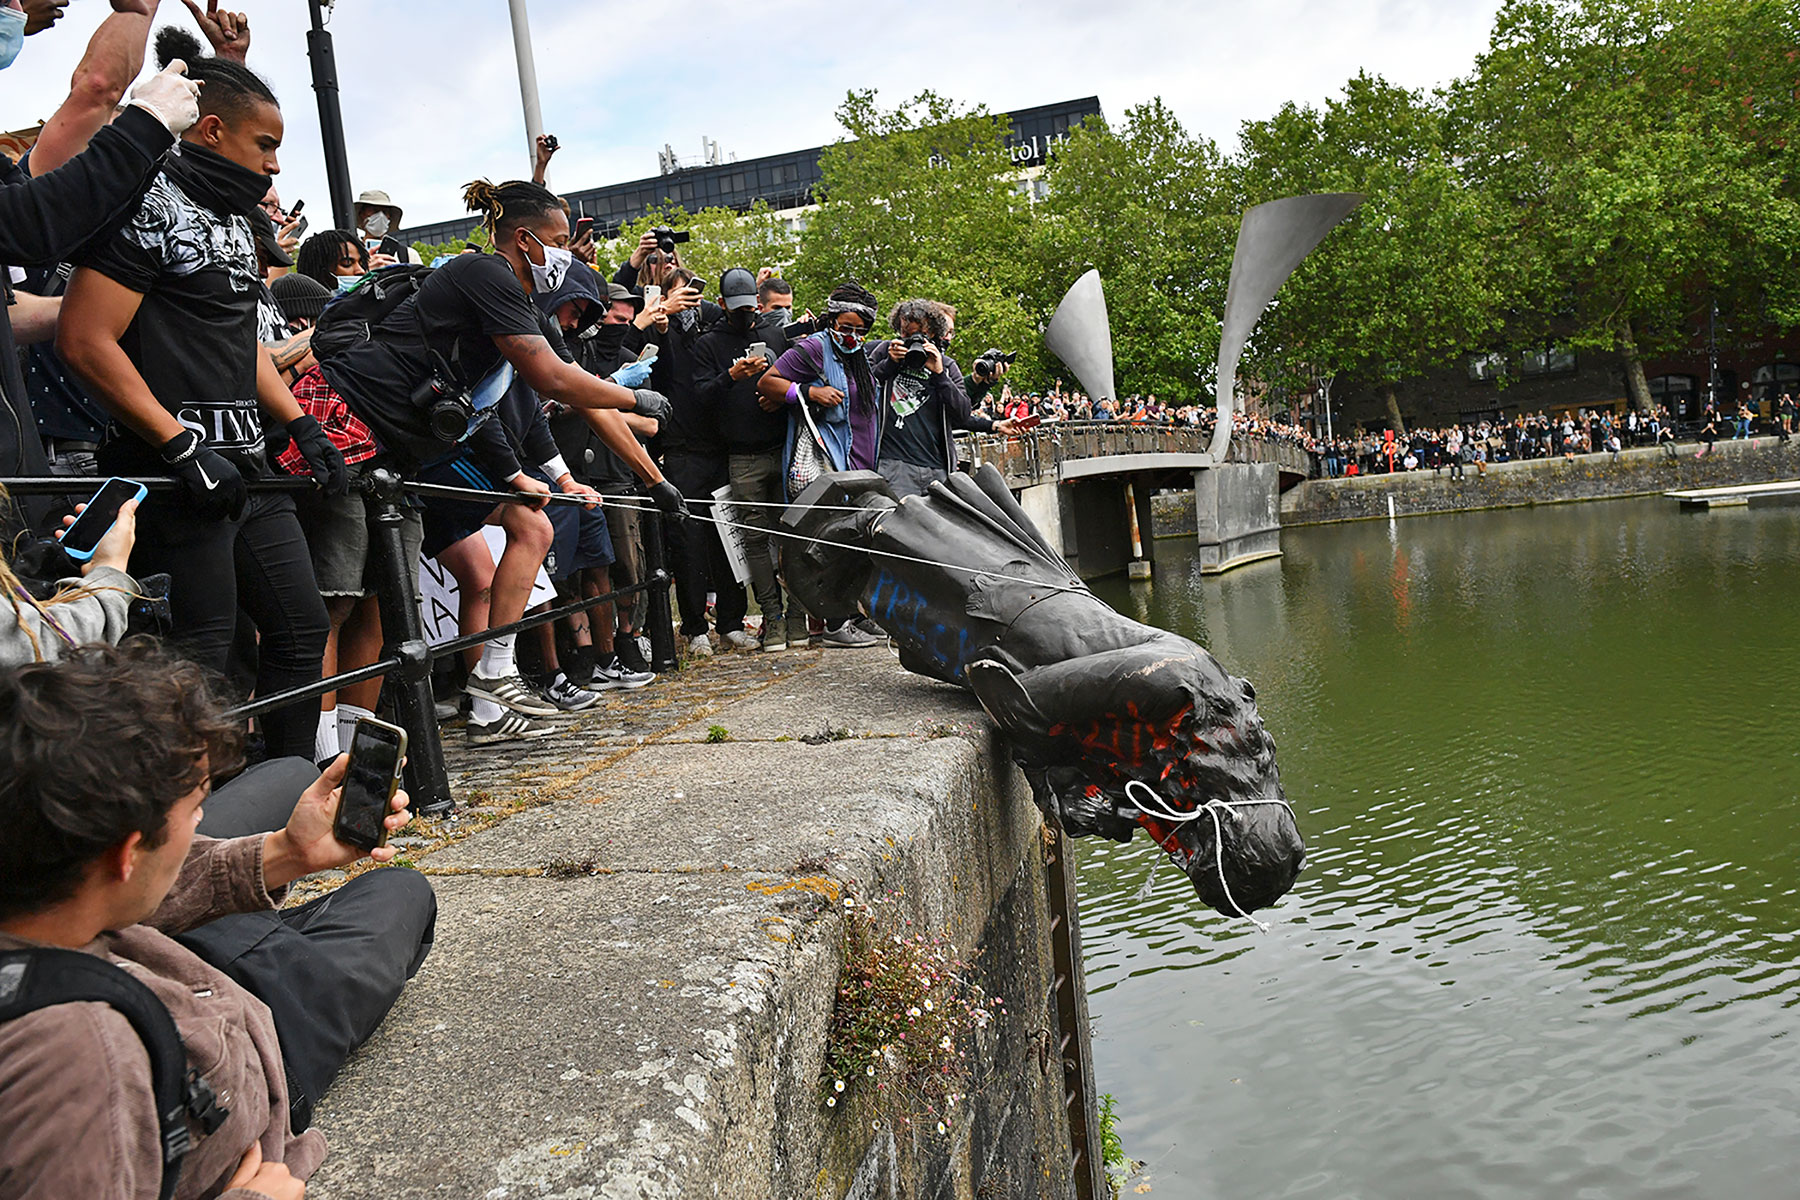 The statue of Edward Colston is thrown into the harbor of Bristol in southwest England, June 7, 2020.